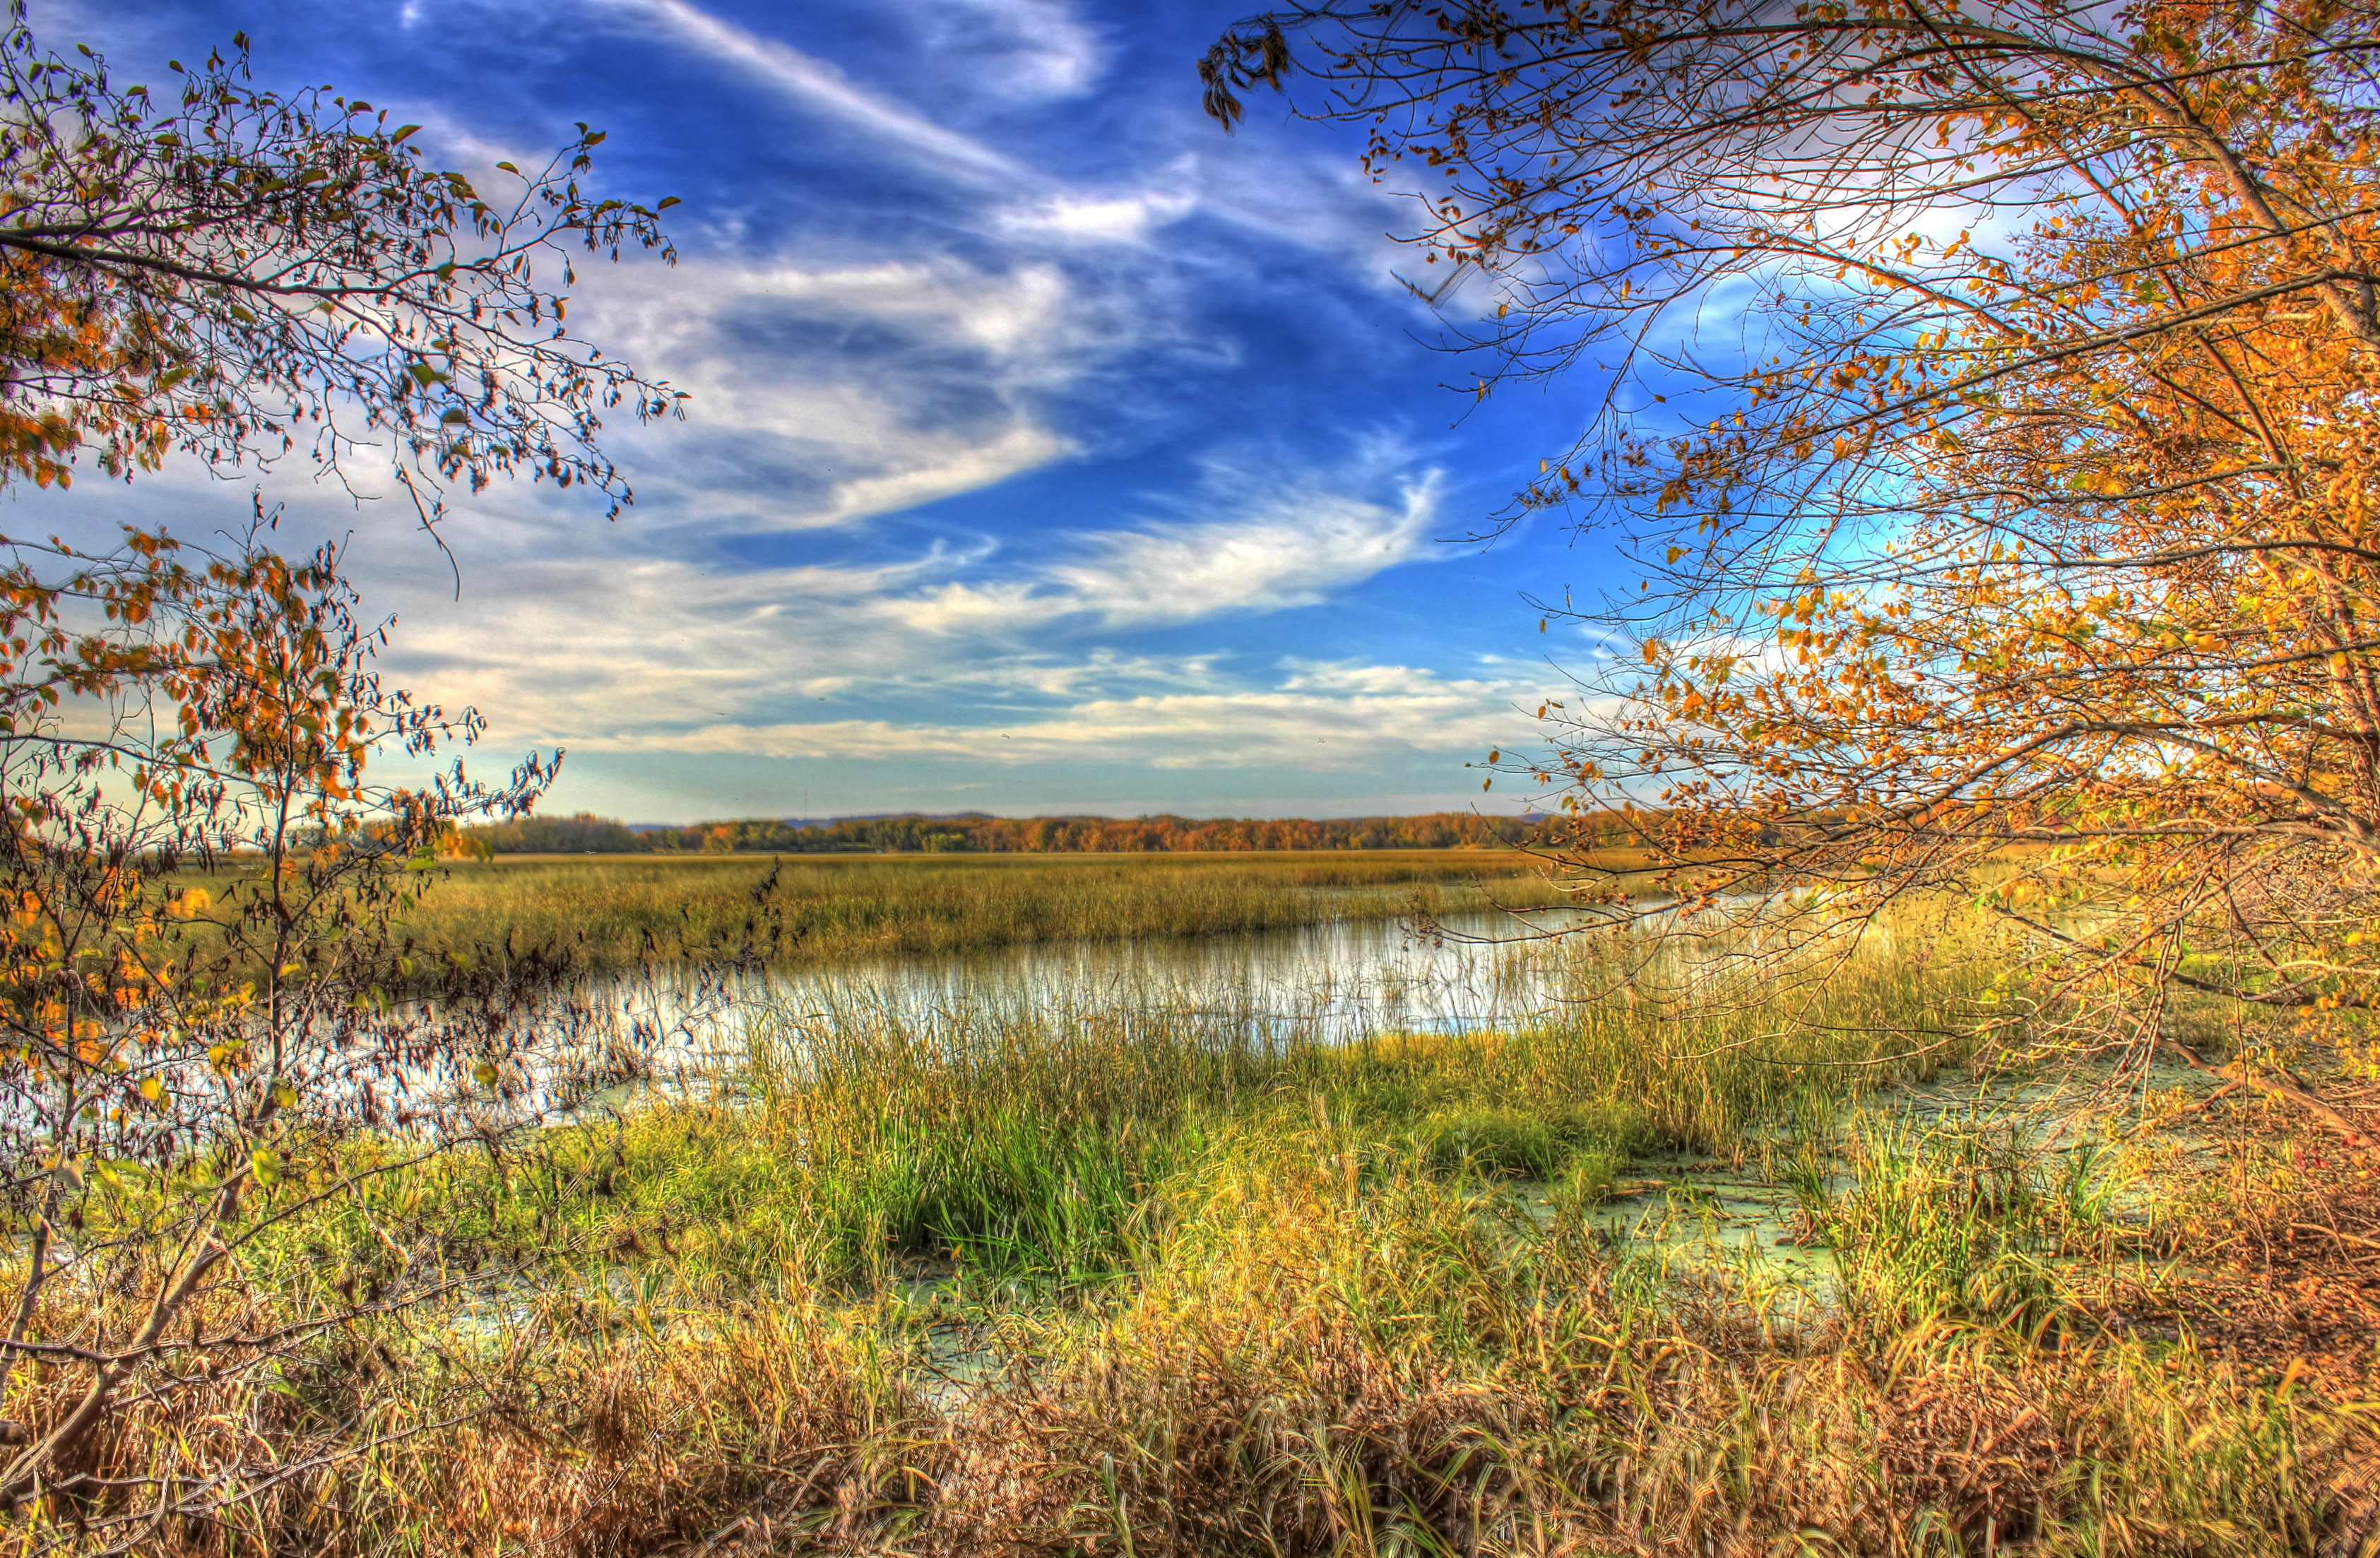 Marshes and Natural Landscape